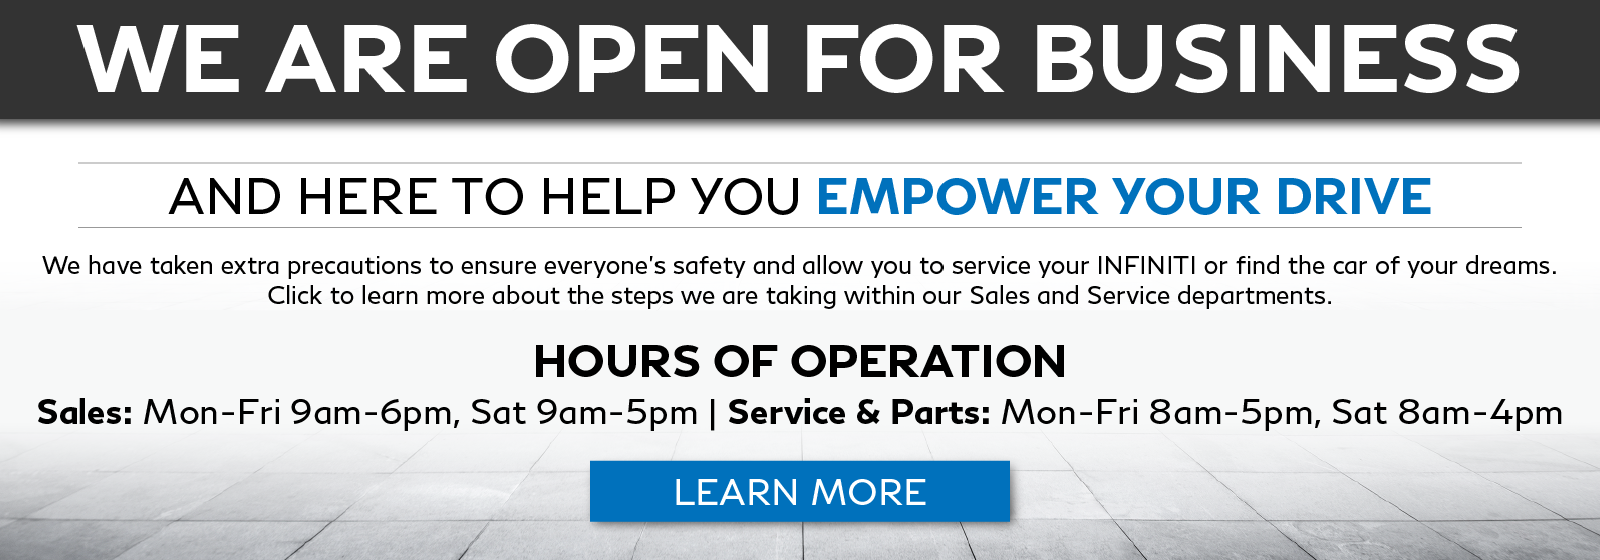 INFINITI of Boerne is open for business. Click to learn about what we are doing to ensure the safety of our customers and staff.